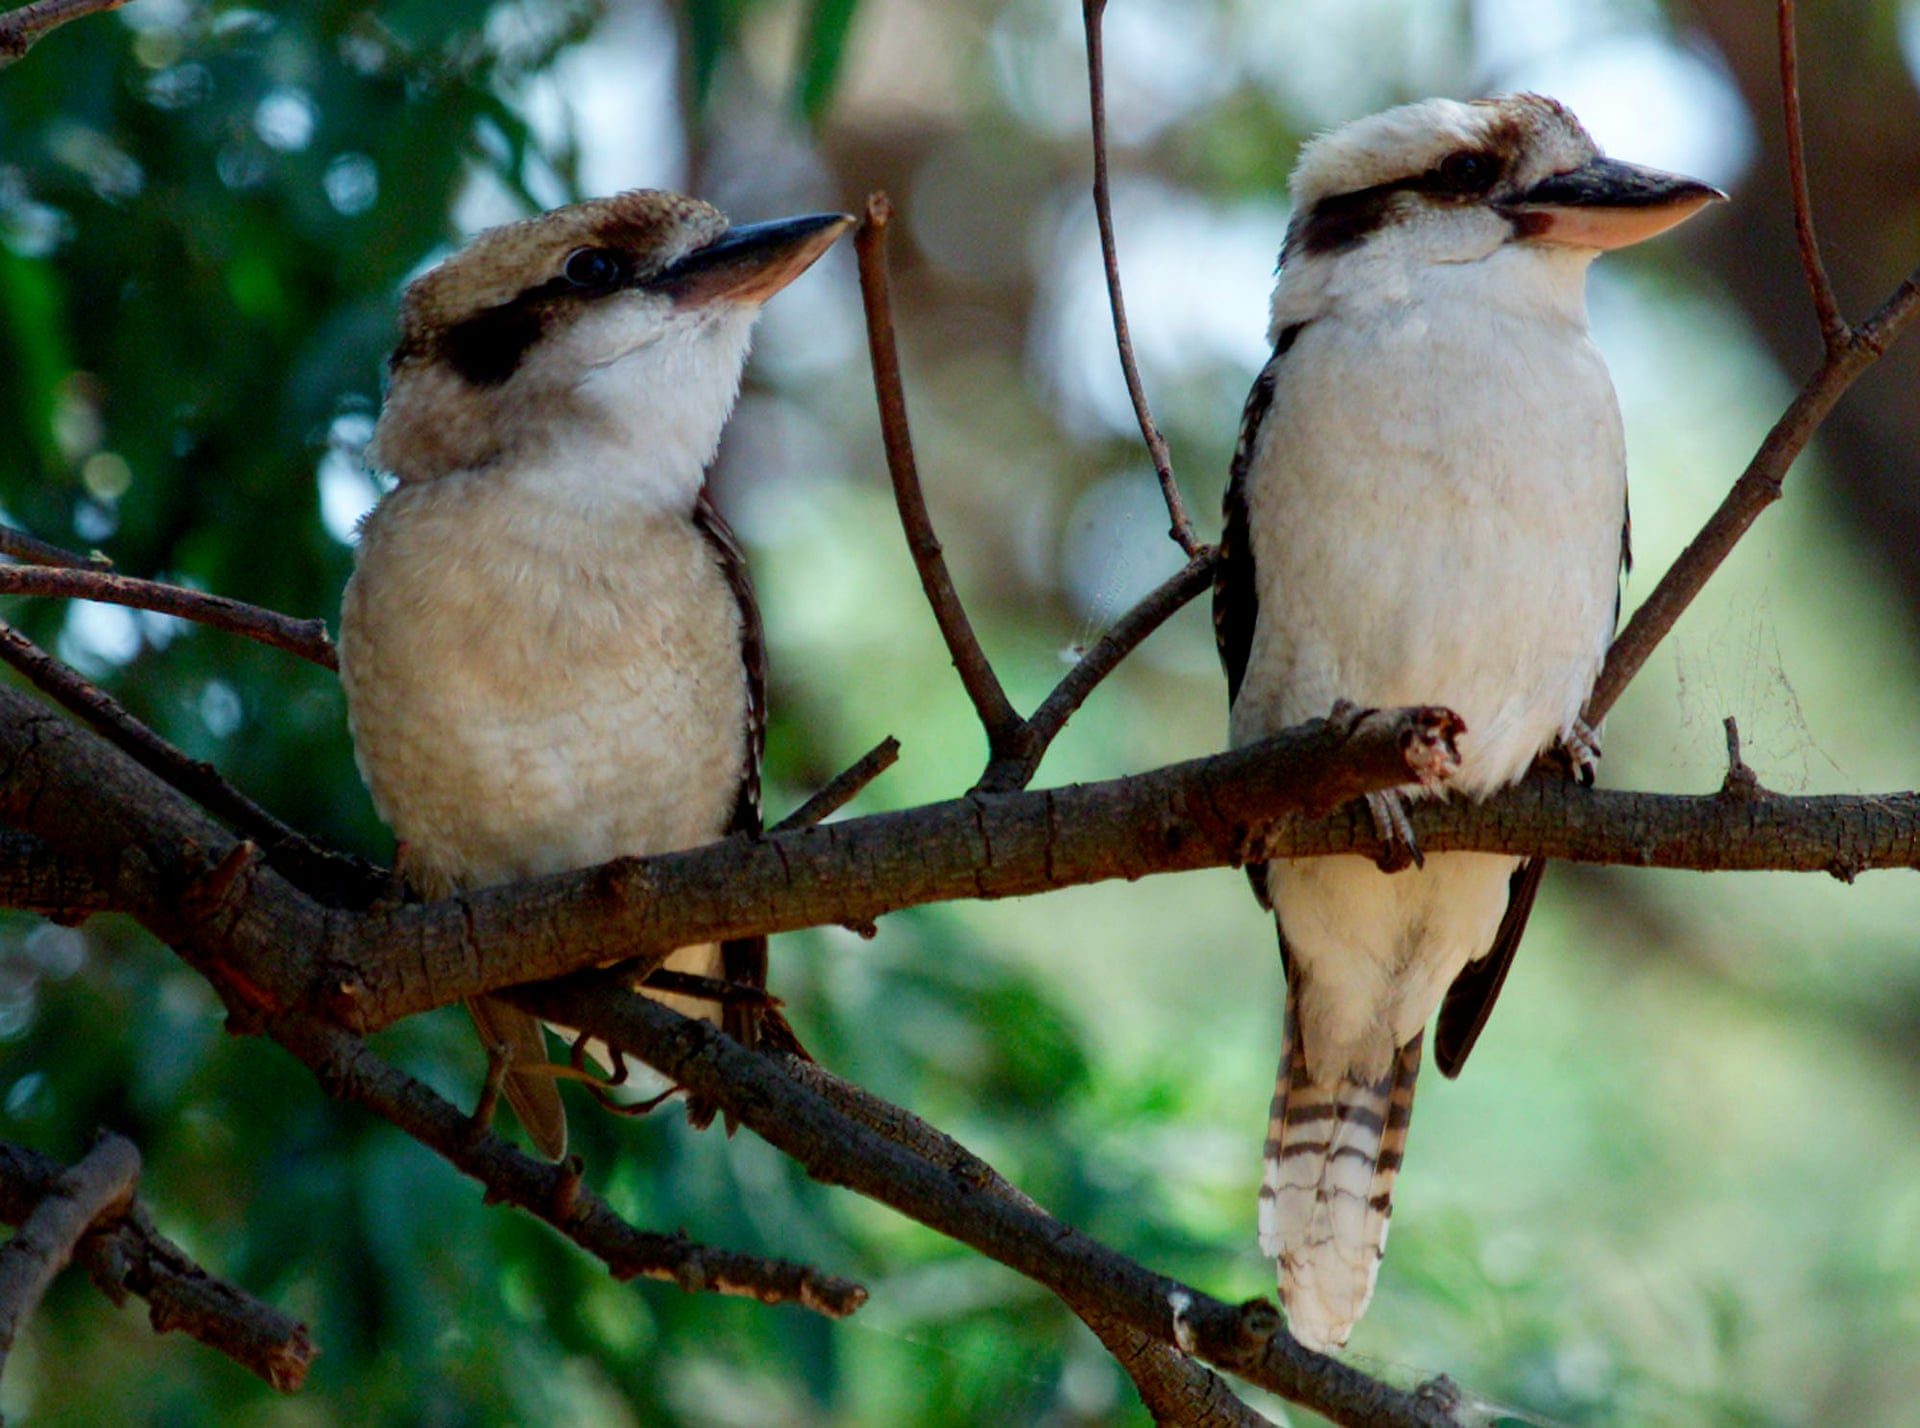 Man who tore head off kookaburra in Perth pub fined $2,500